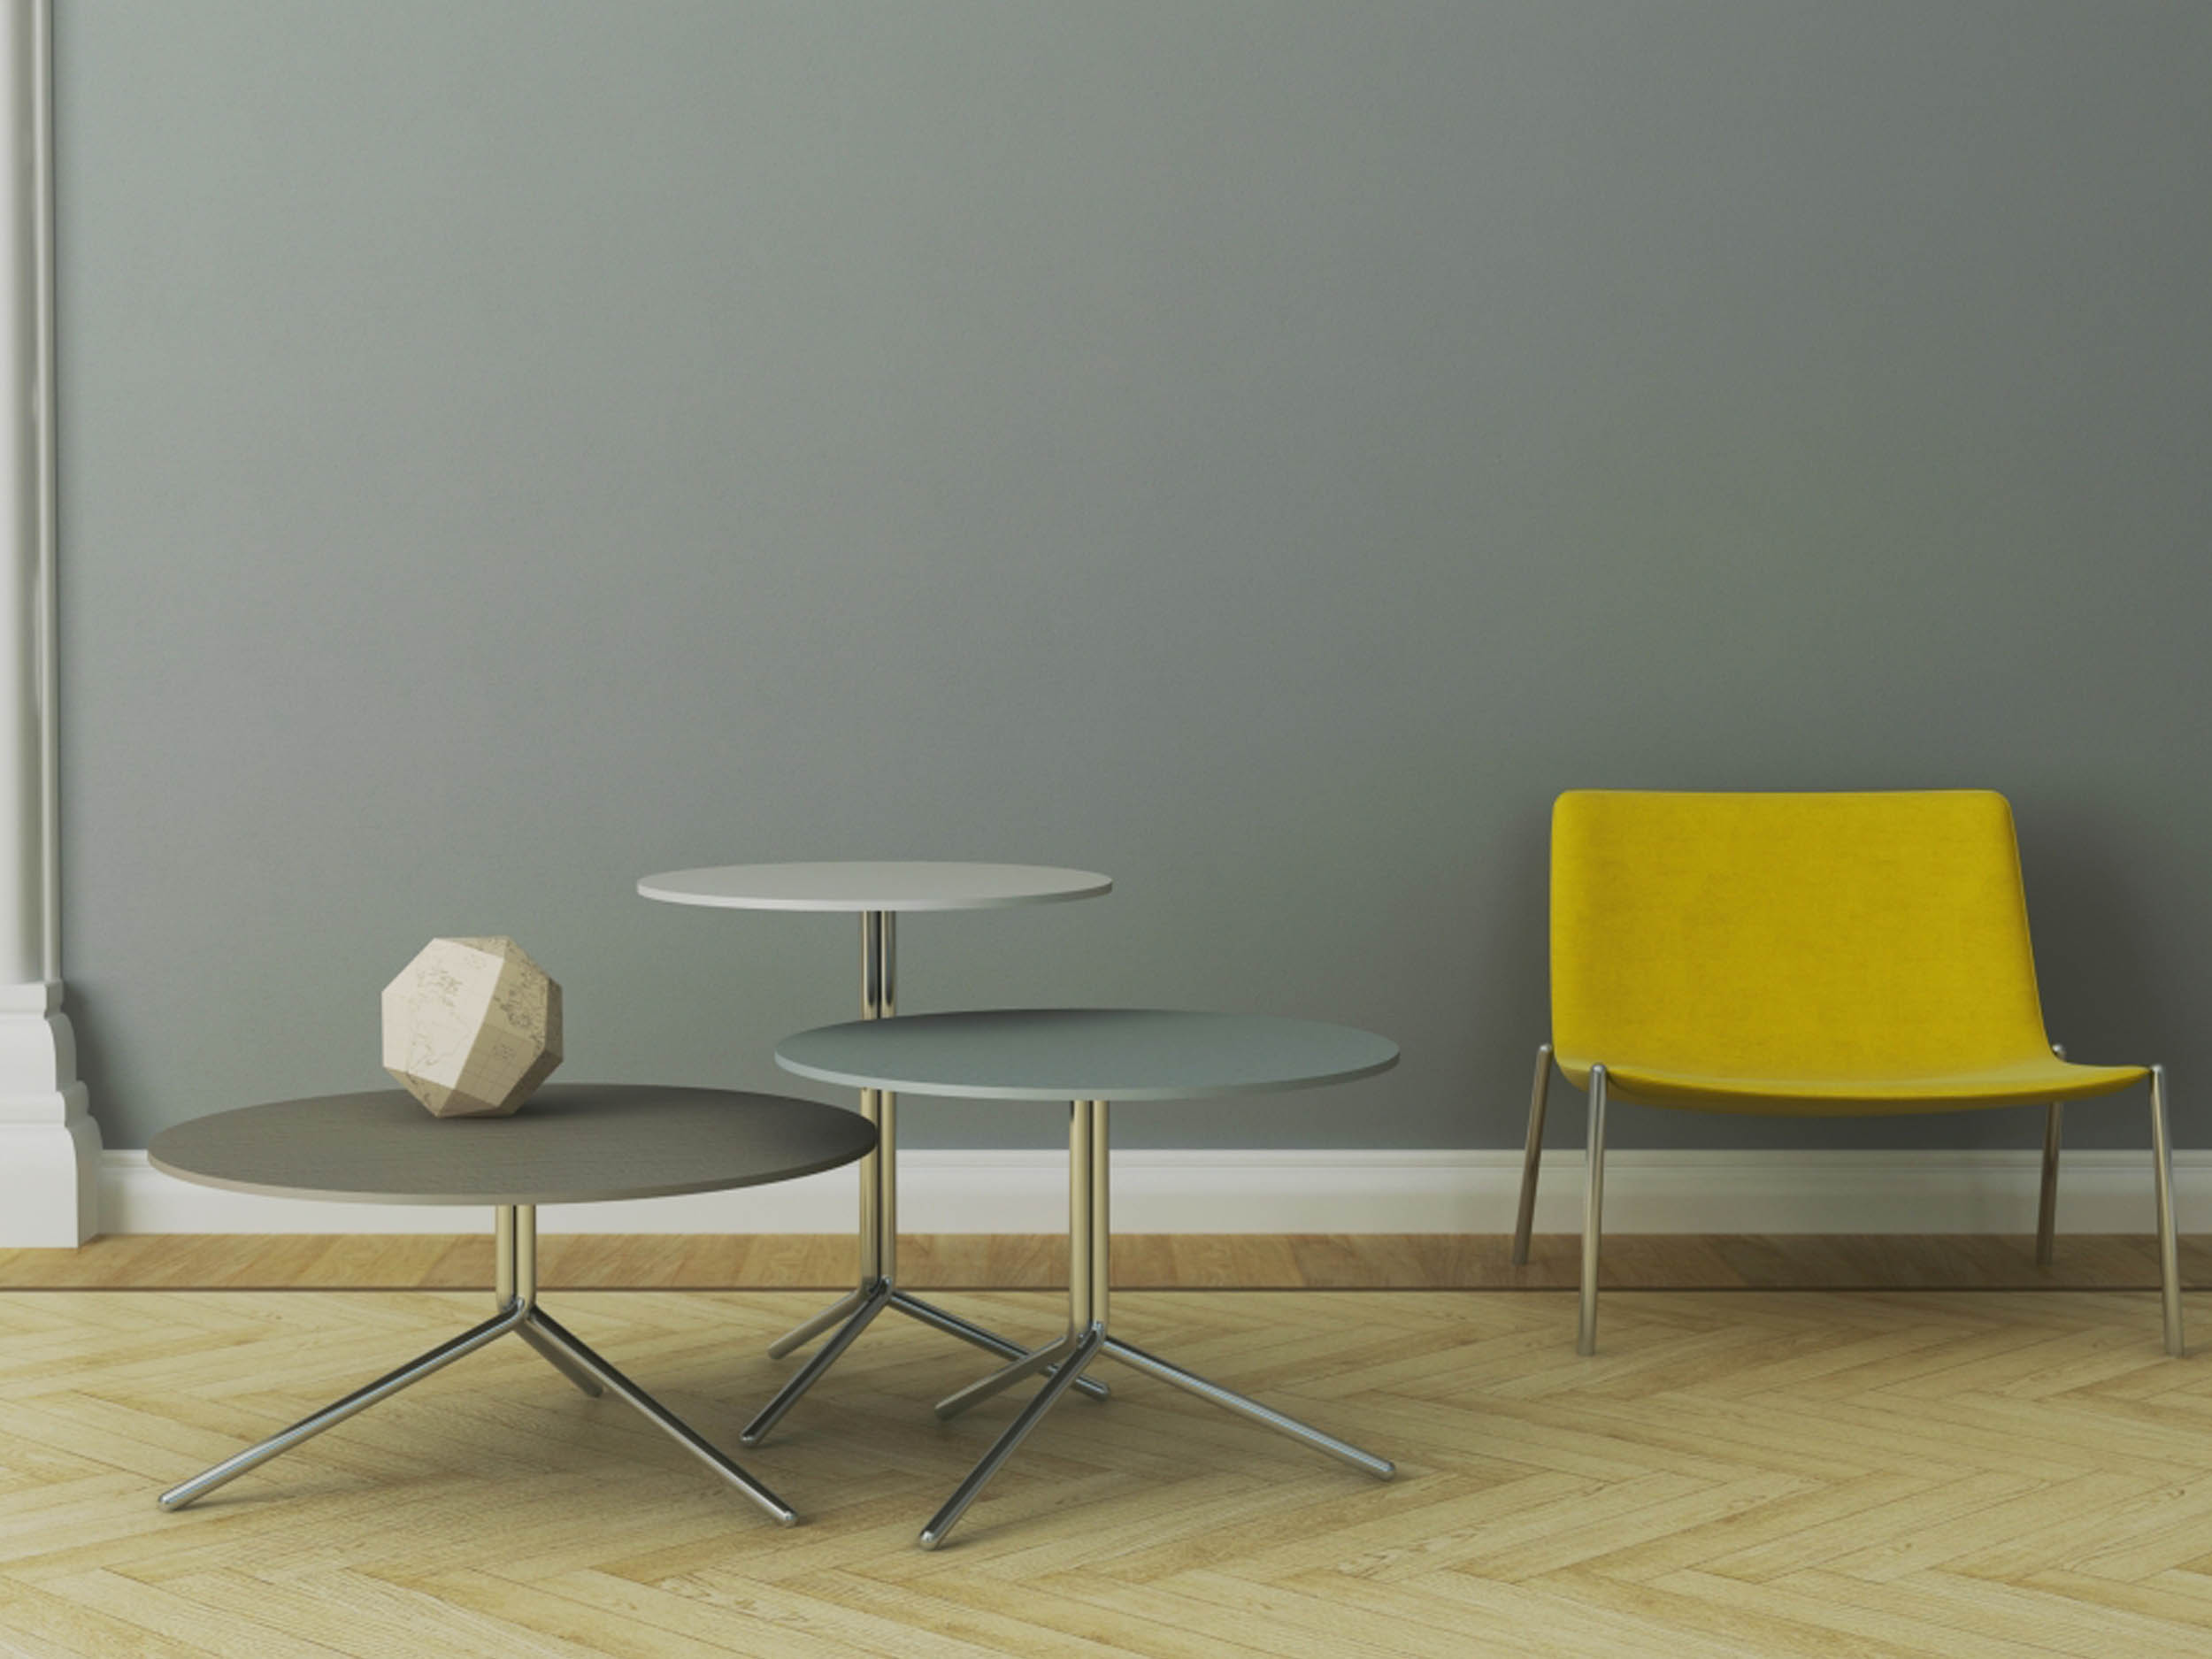 Trampoliere Central Table